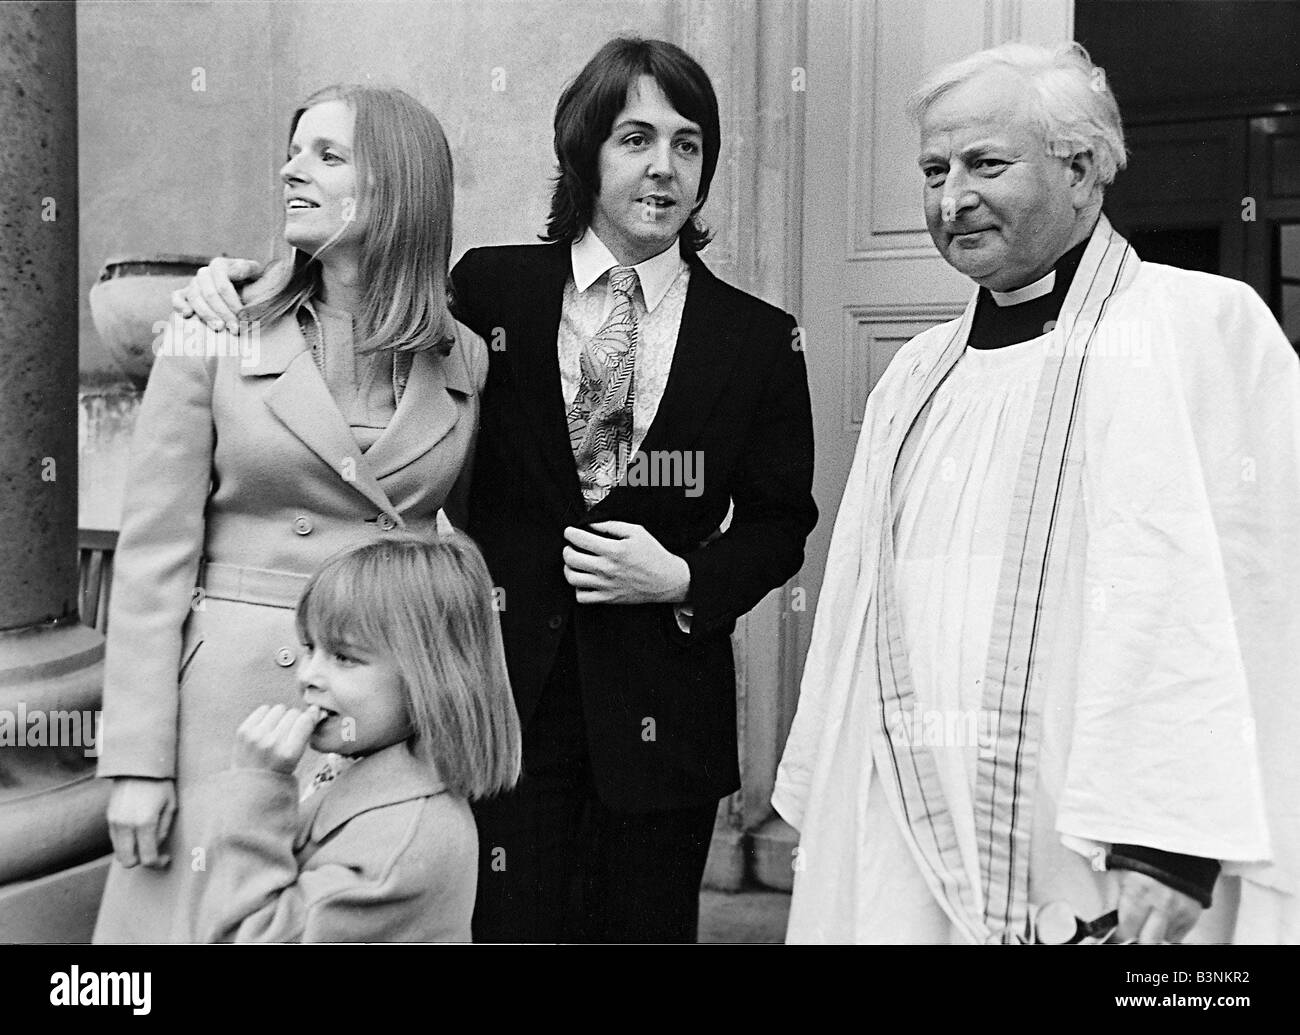 Beatles 1969 Paul McCartney Marries Linda Eastman At Church With Her